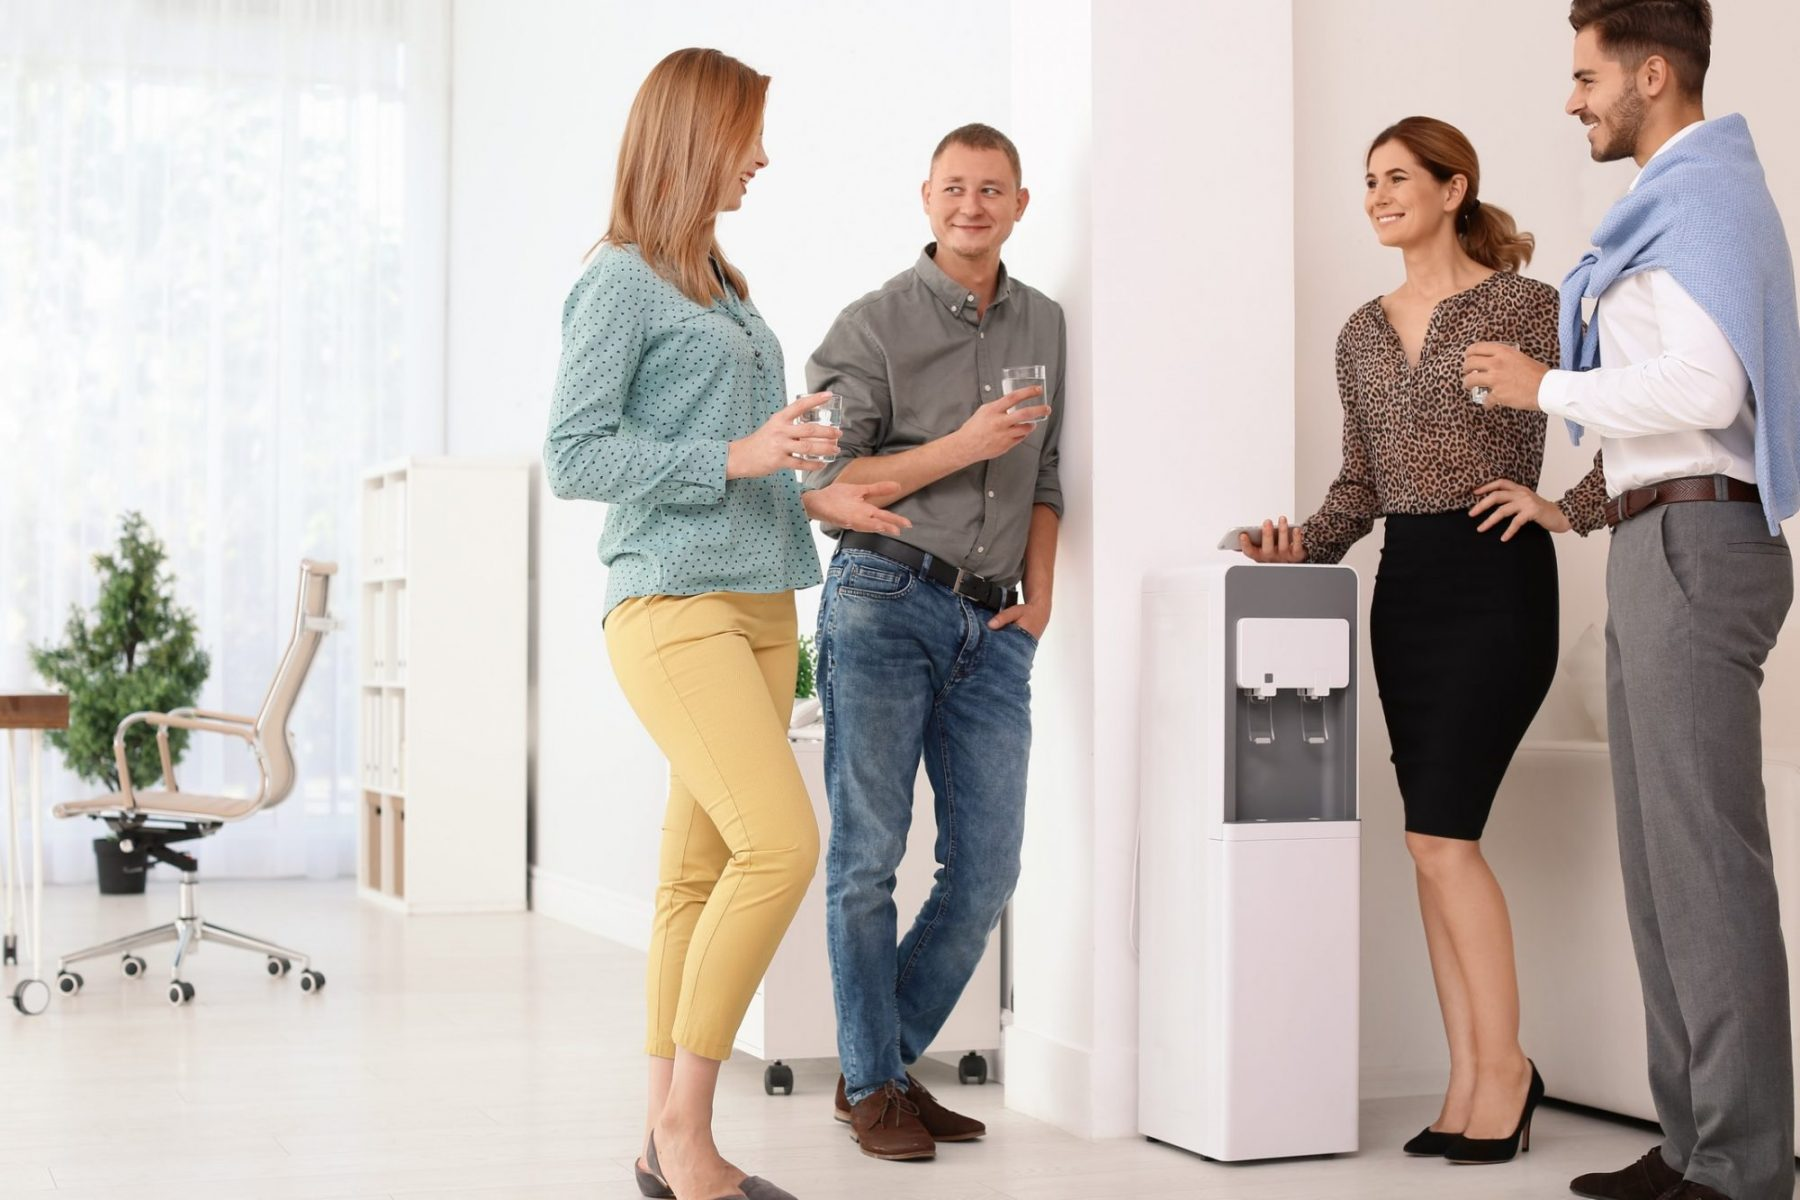 Tucson Positive Lifestyle Choices | Healthy Water Filtration | Employee Benefit